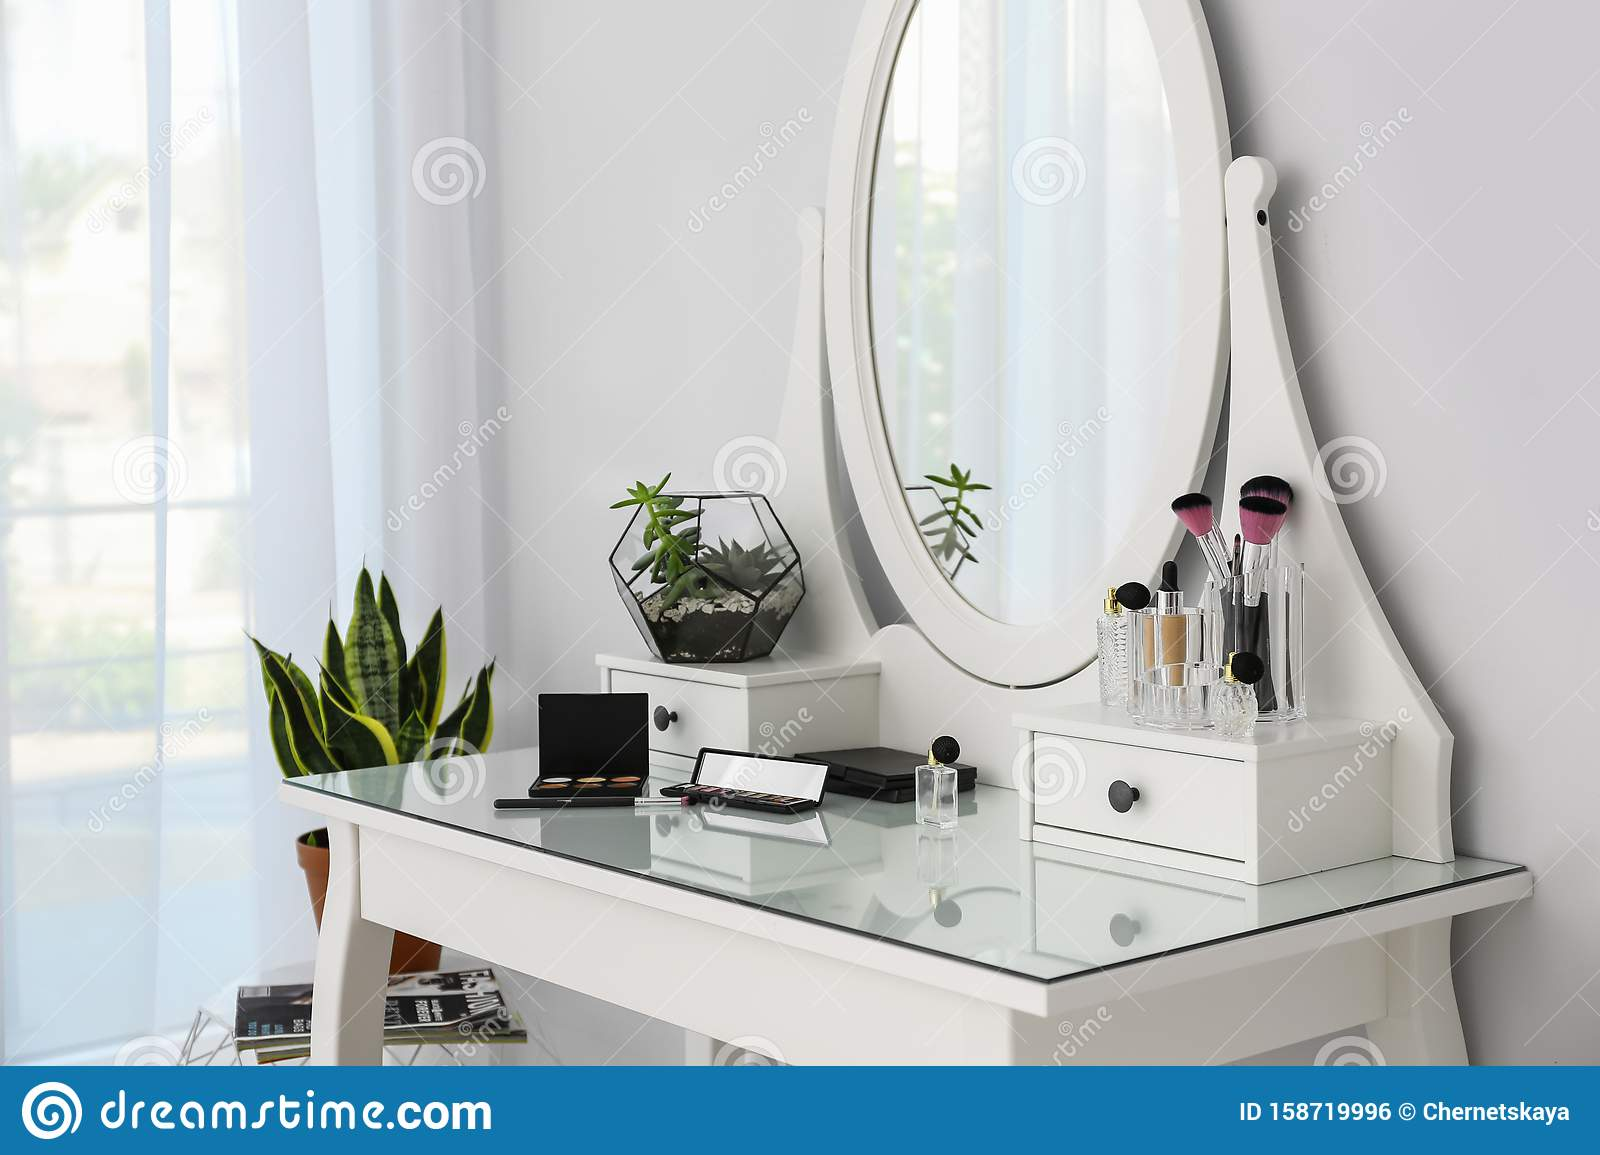 Cosmetics On Dressing Table With Mirror Stylish Room Interior Stock Photo Image Of Cosmetics Room 158719996